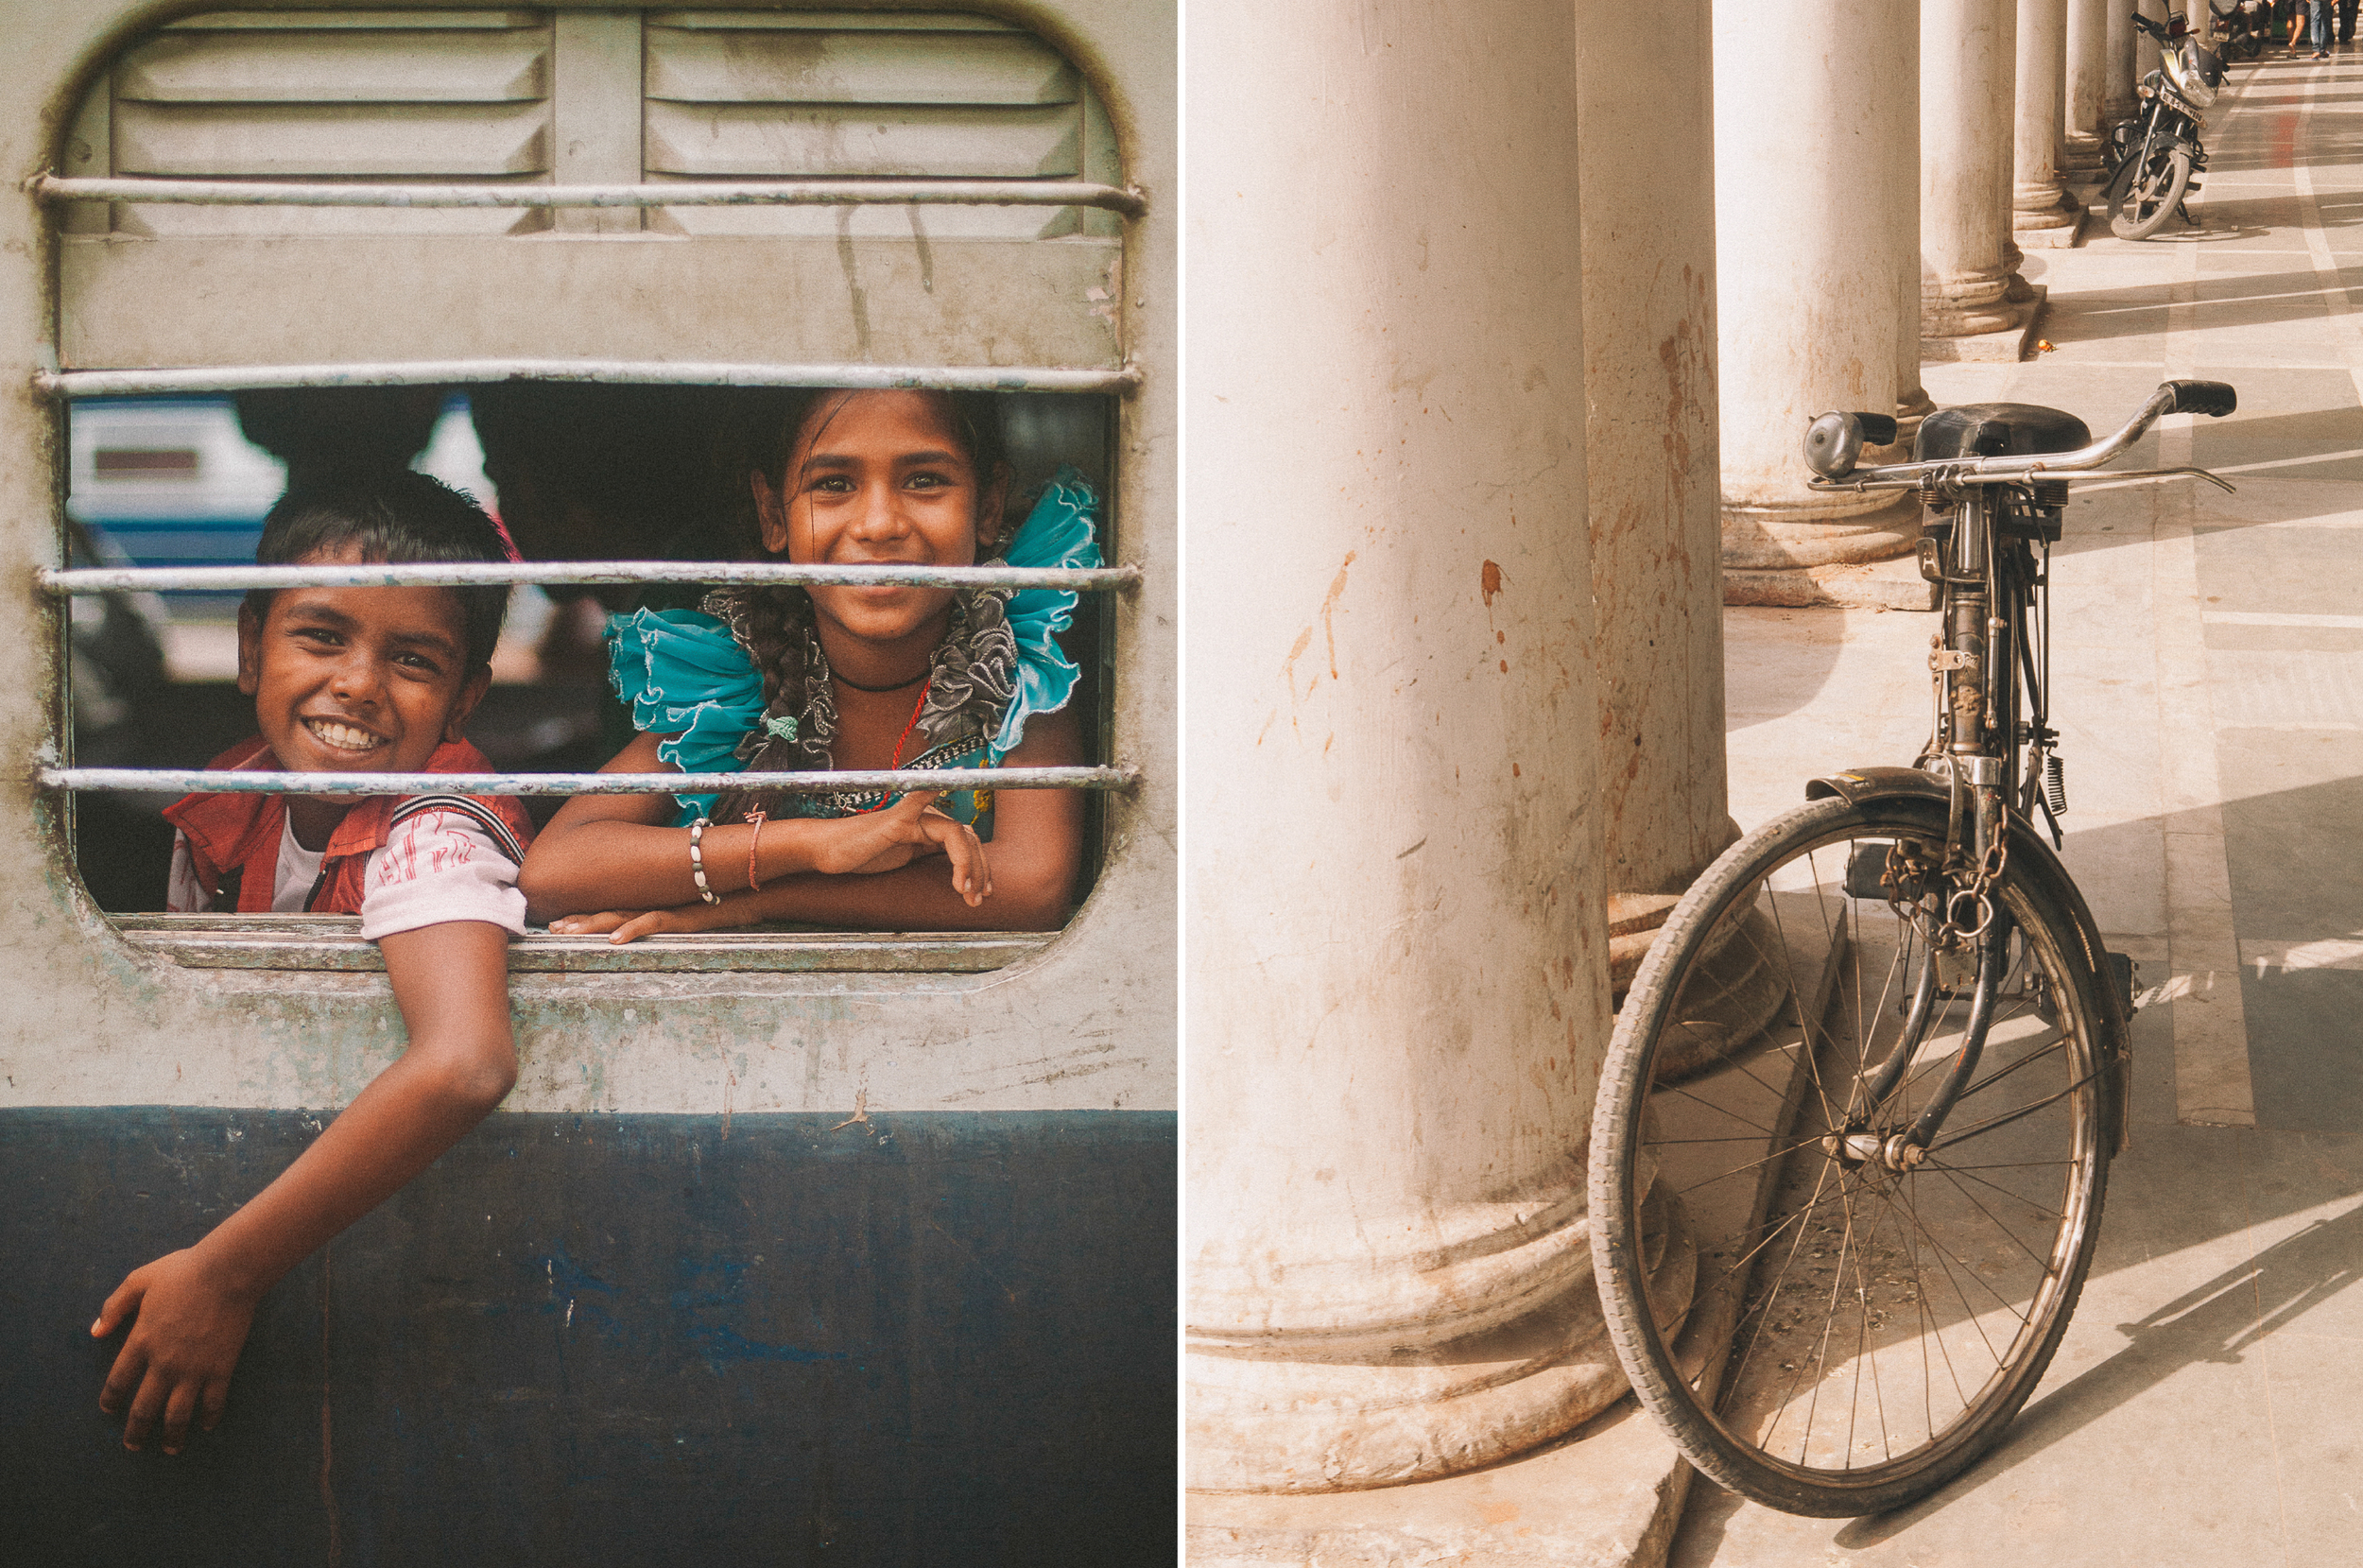 san diego wedding   photographer | collage of children peeking through window and a bike